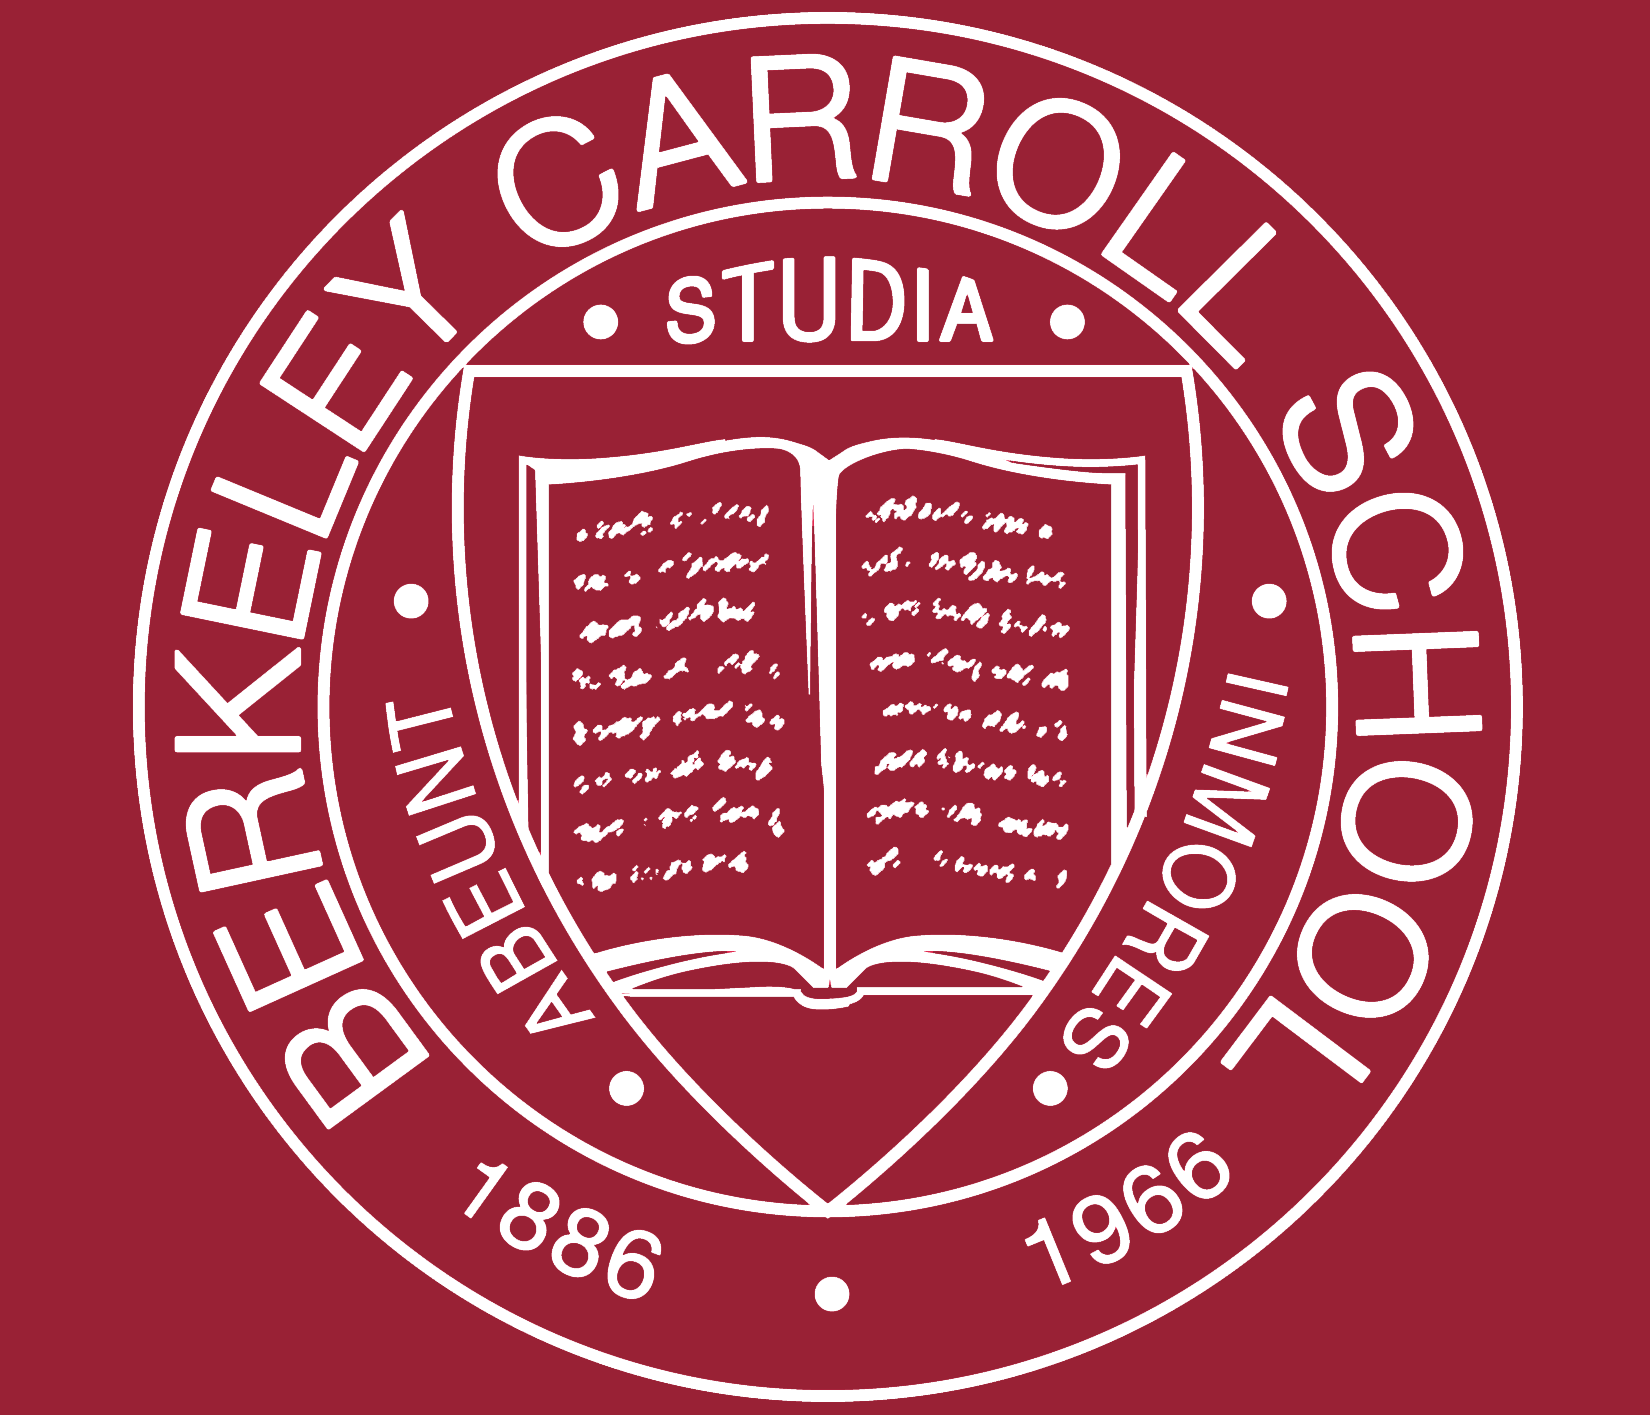 Logo_Berkeley_Carroll.png